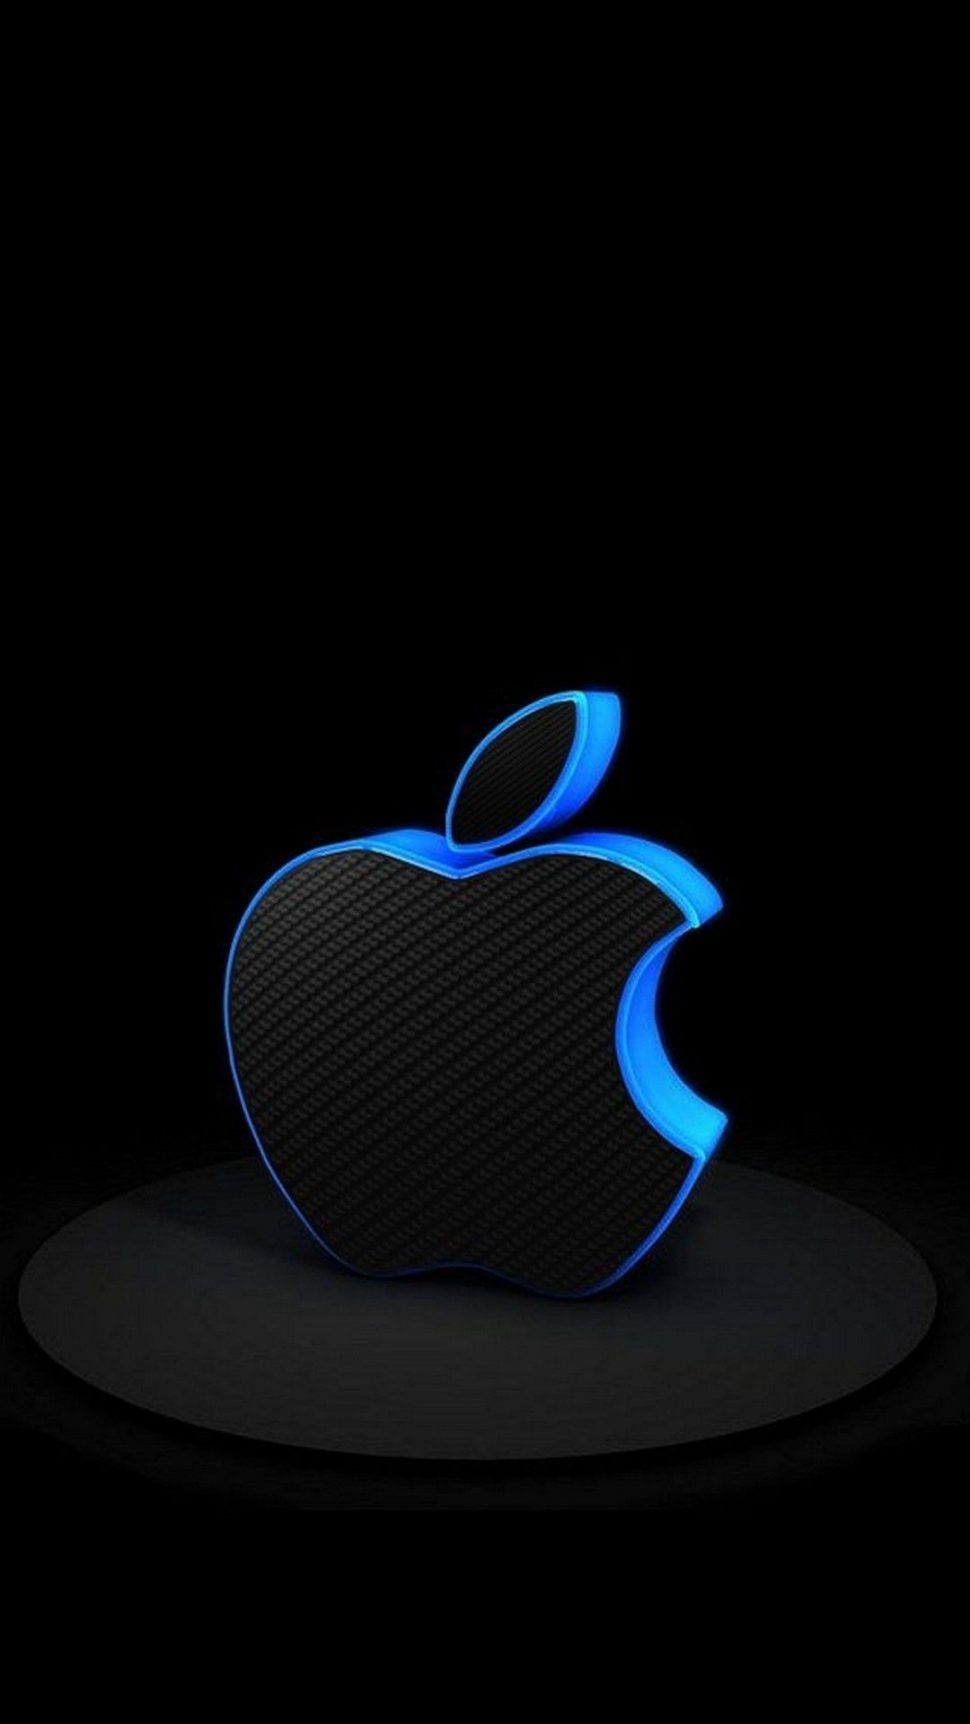 Iphone Wallpaper Free Download 3d Pictures W6kzur Hd Redsmith Top In 2020 Apple Logo Wallpaper Iphone Iphone Logo Apple Logo Wallpaper